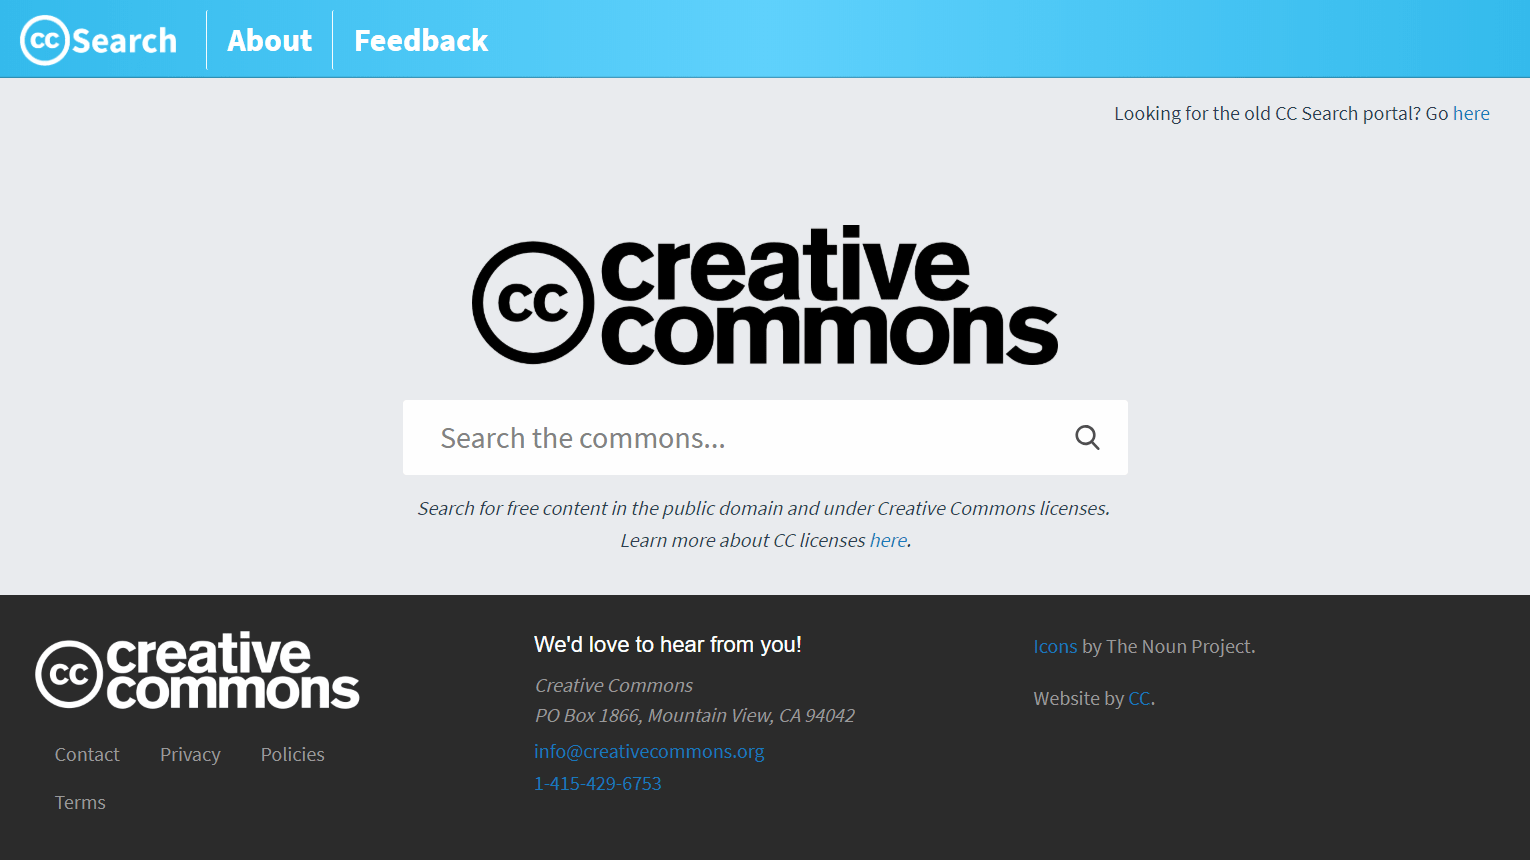 CC Search - Creative Commons